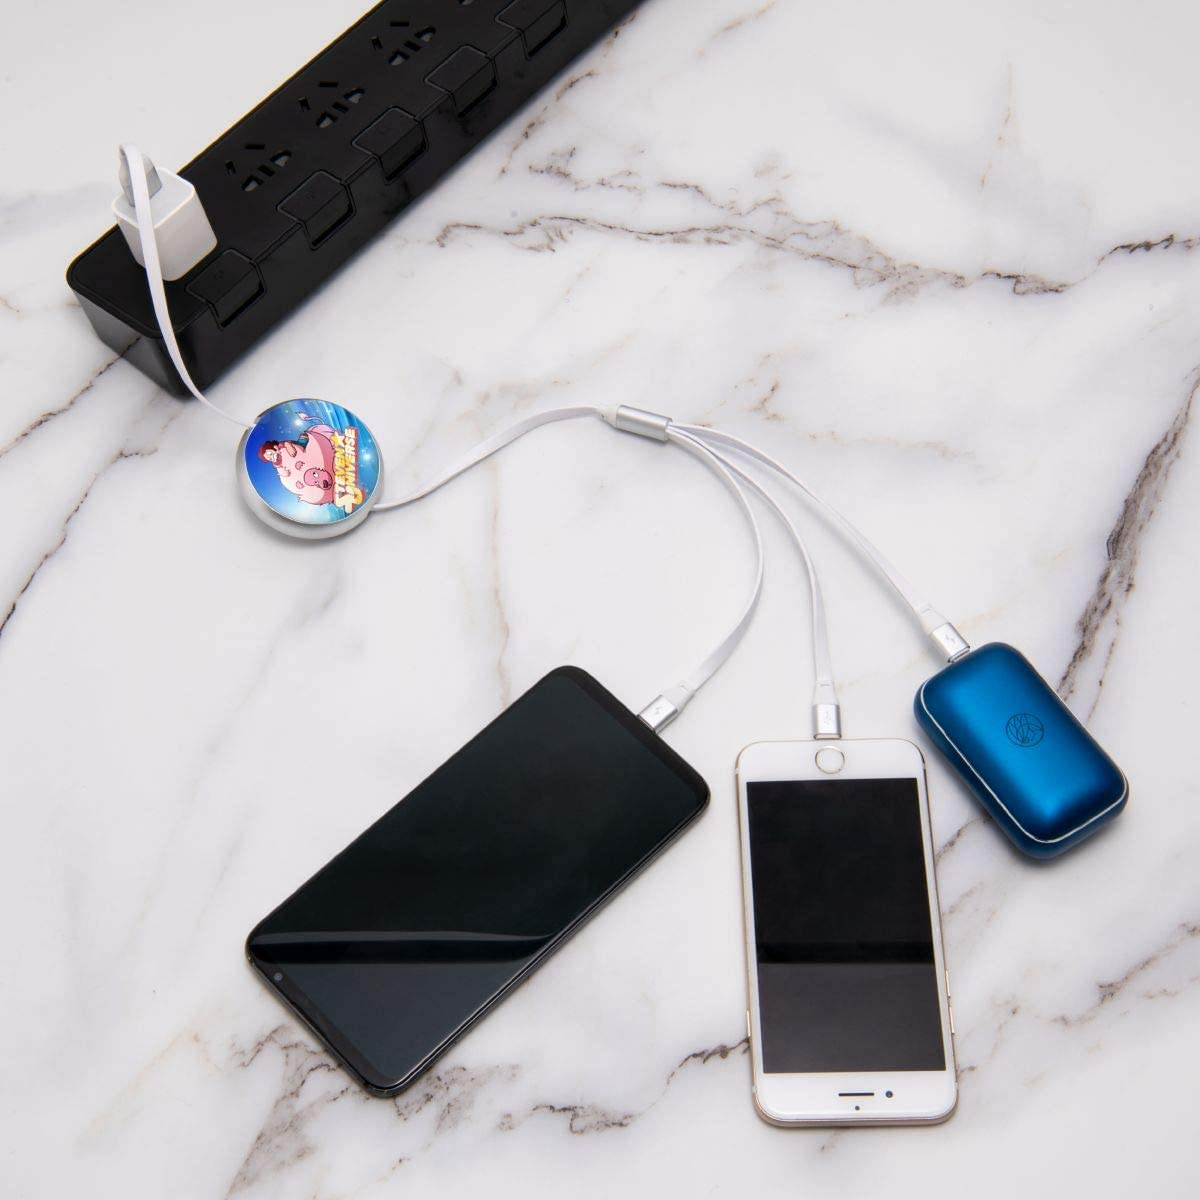 Steven Universe Three-in-One Portable Charger Fast Charging Data Sync Transfer Cord USB Charger